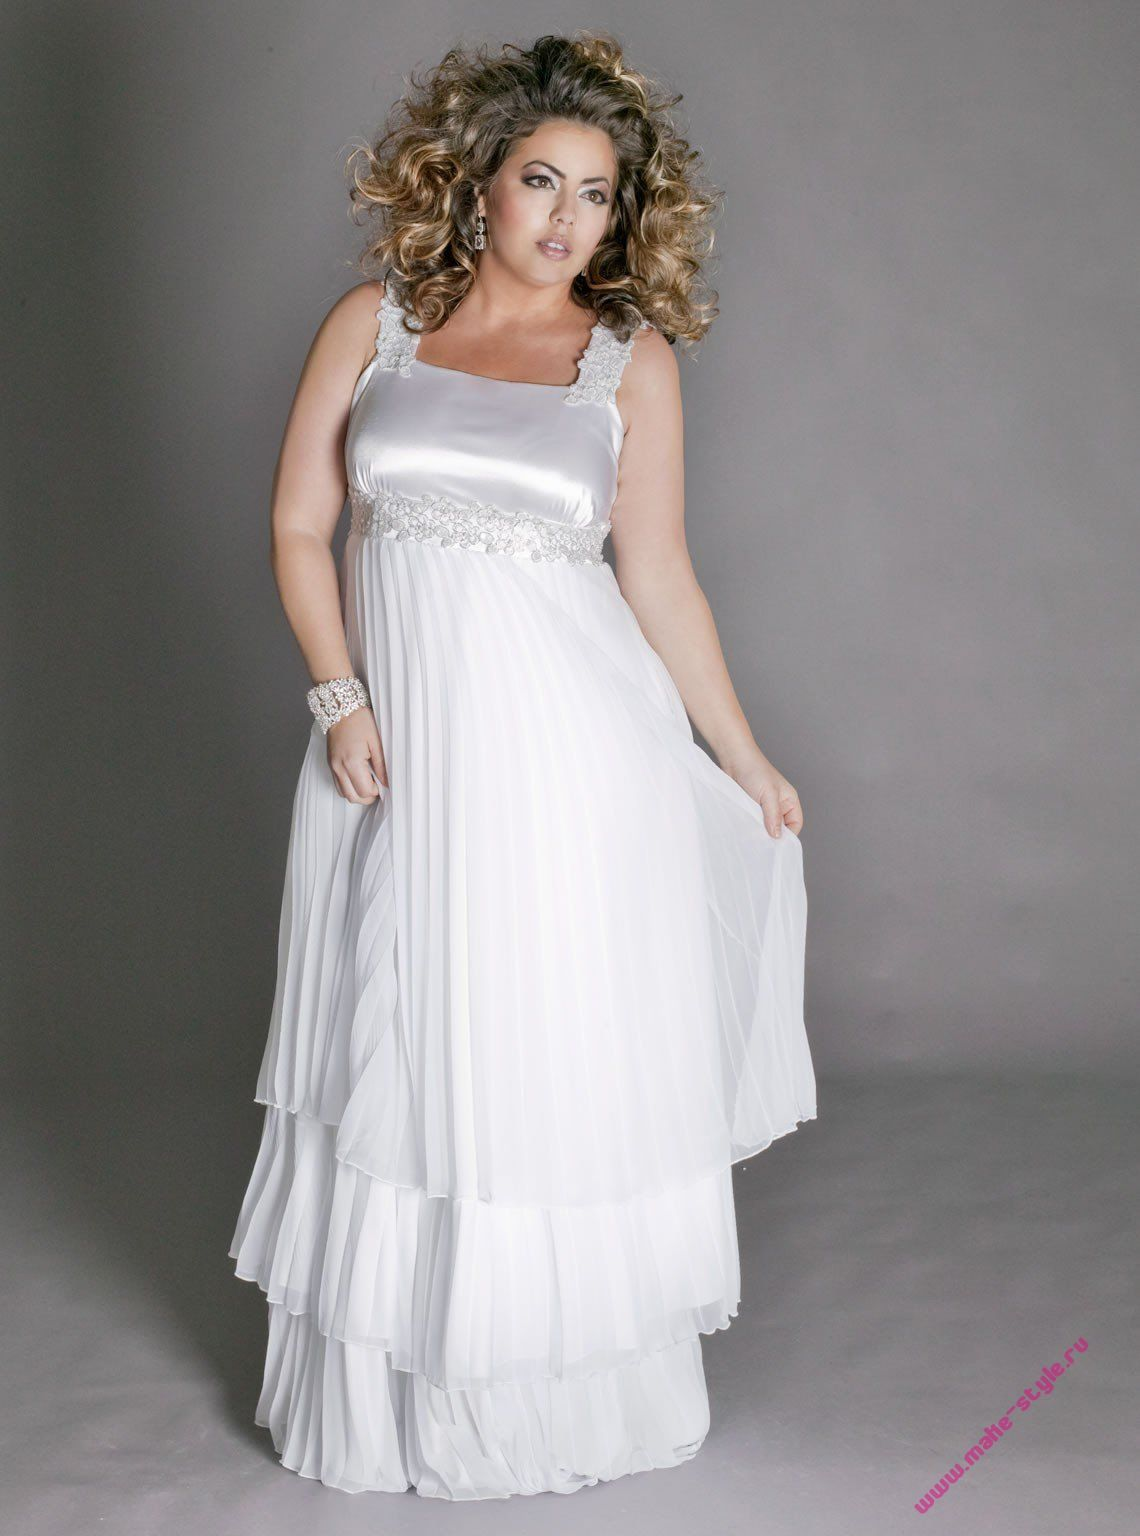 wedding gowns for women over 50 | ... Dresses For Women ...